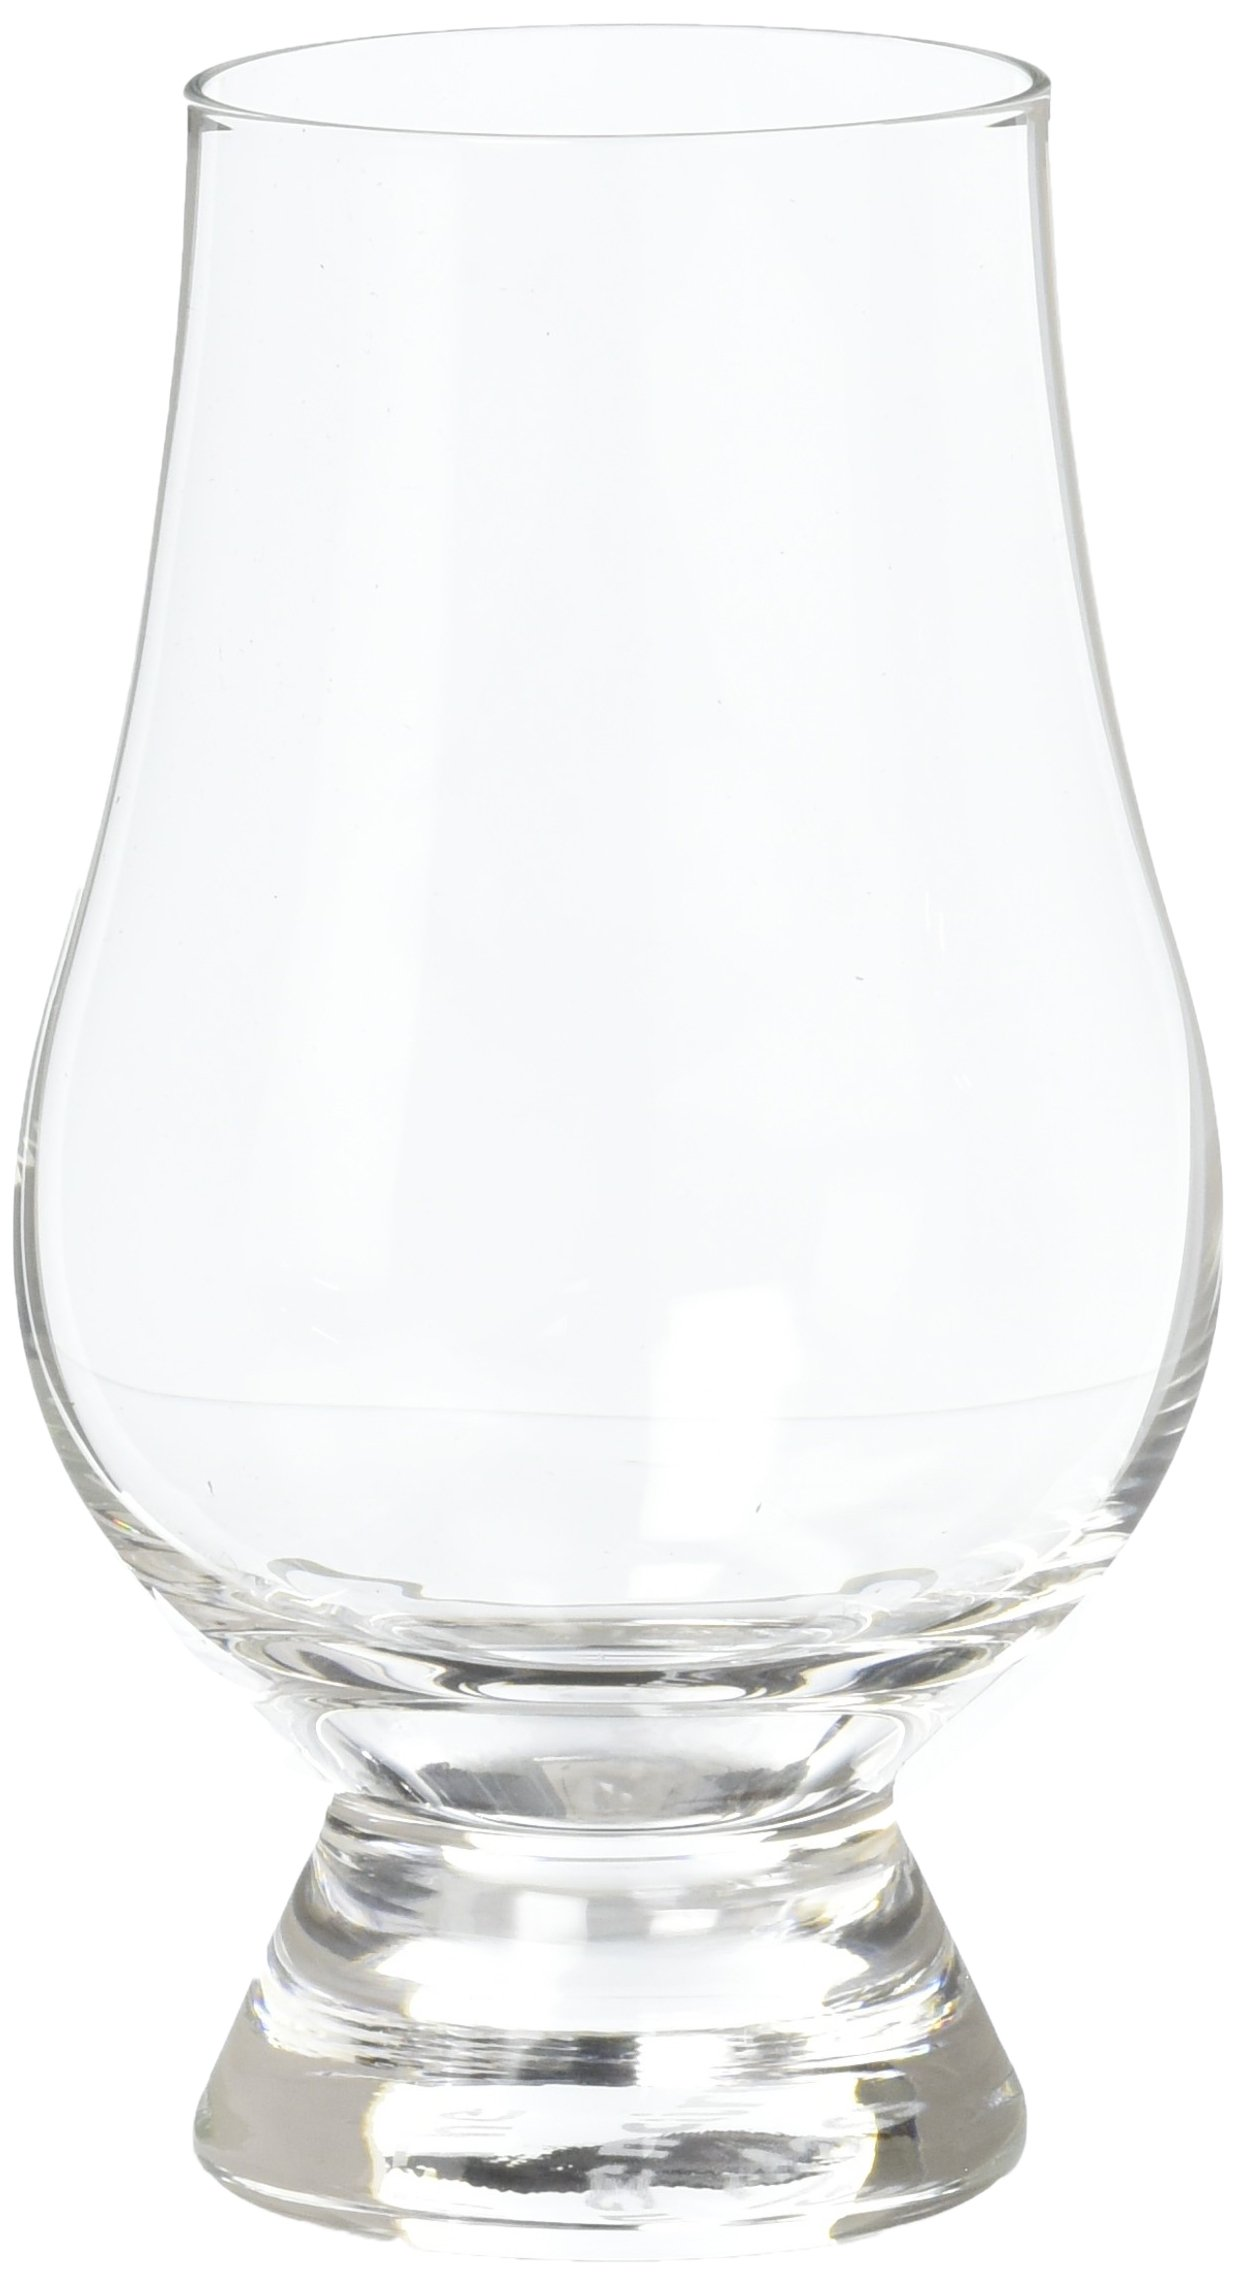 Glencairn Crystal Whiskey Glass, Set of 6, Clear, 6 Pack by Glencairn